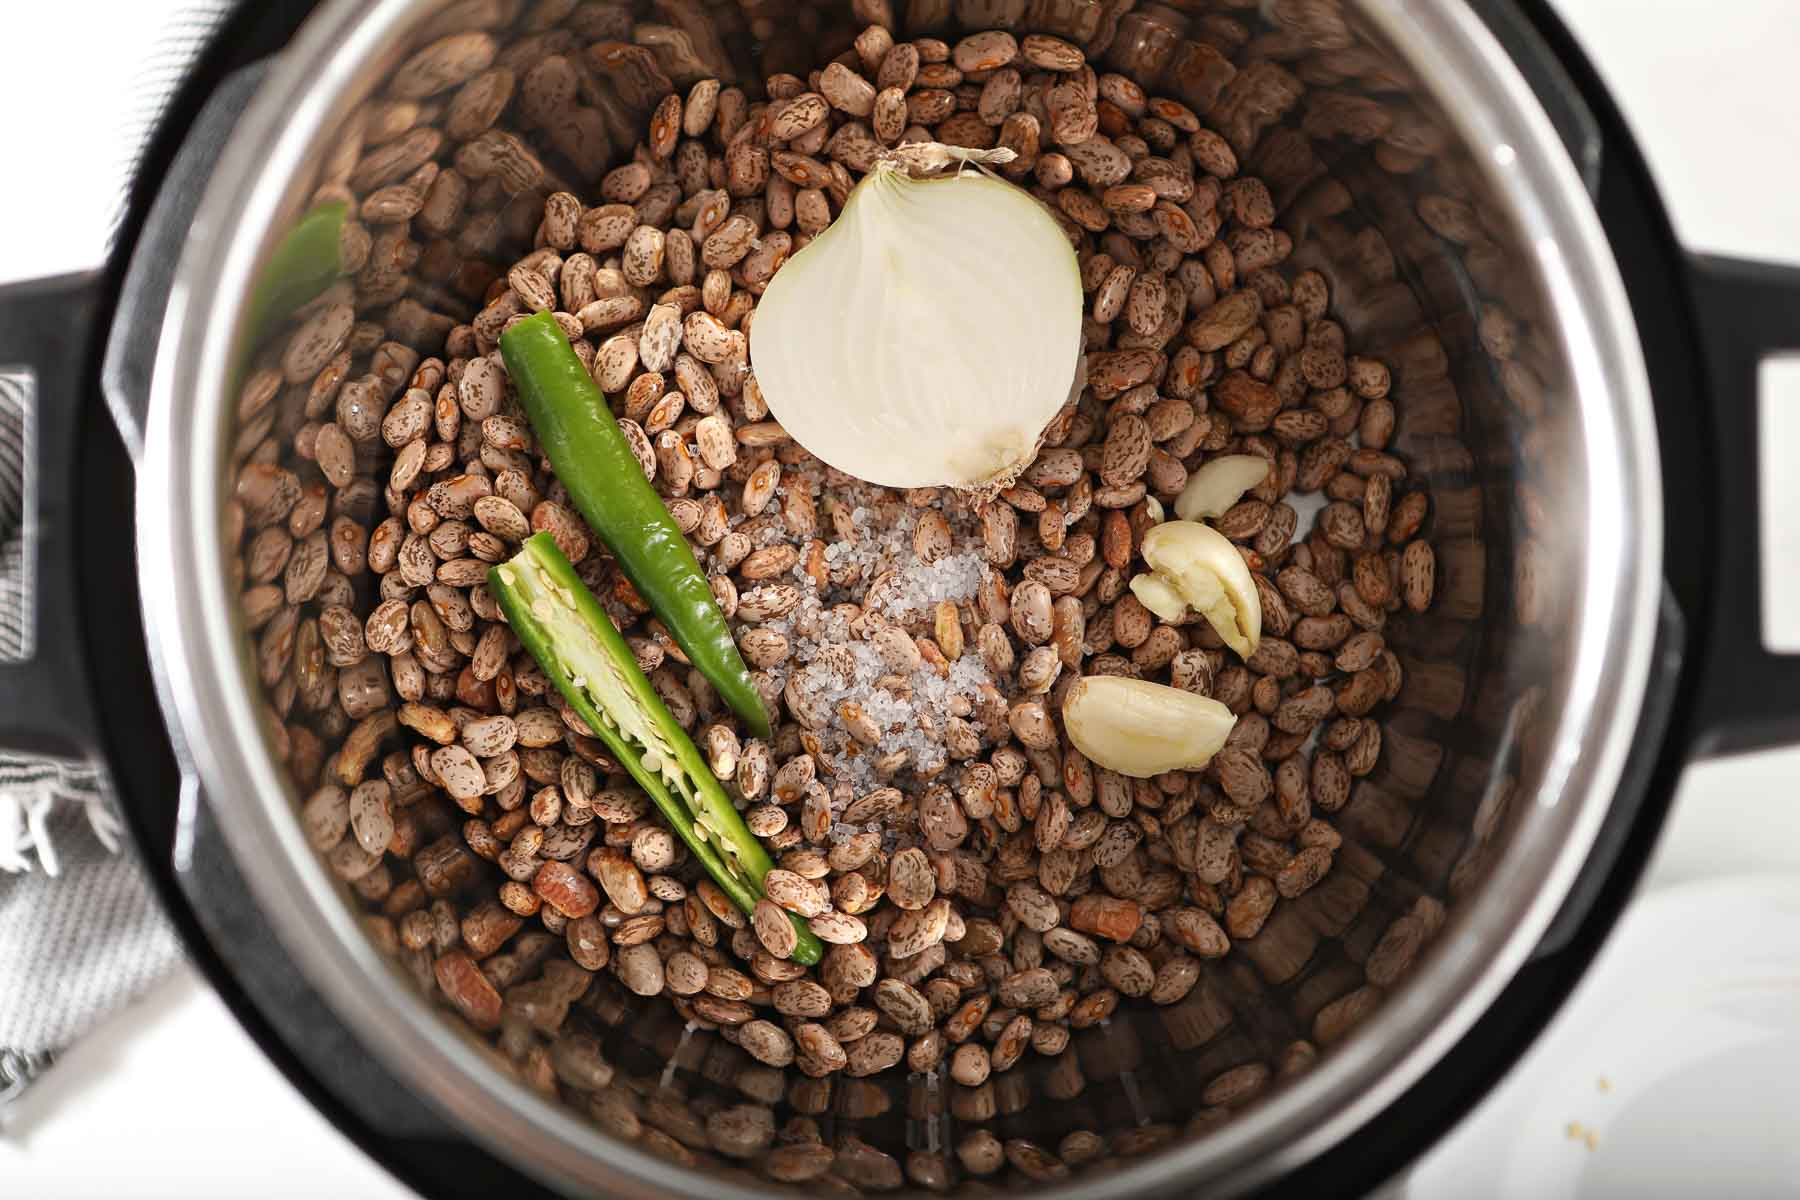 Pinto beans in instant pot with onions, garlic and pepper.